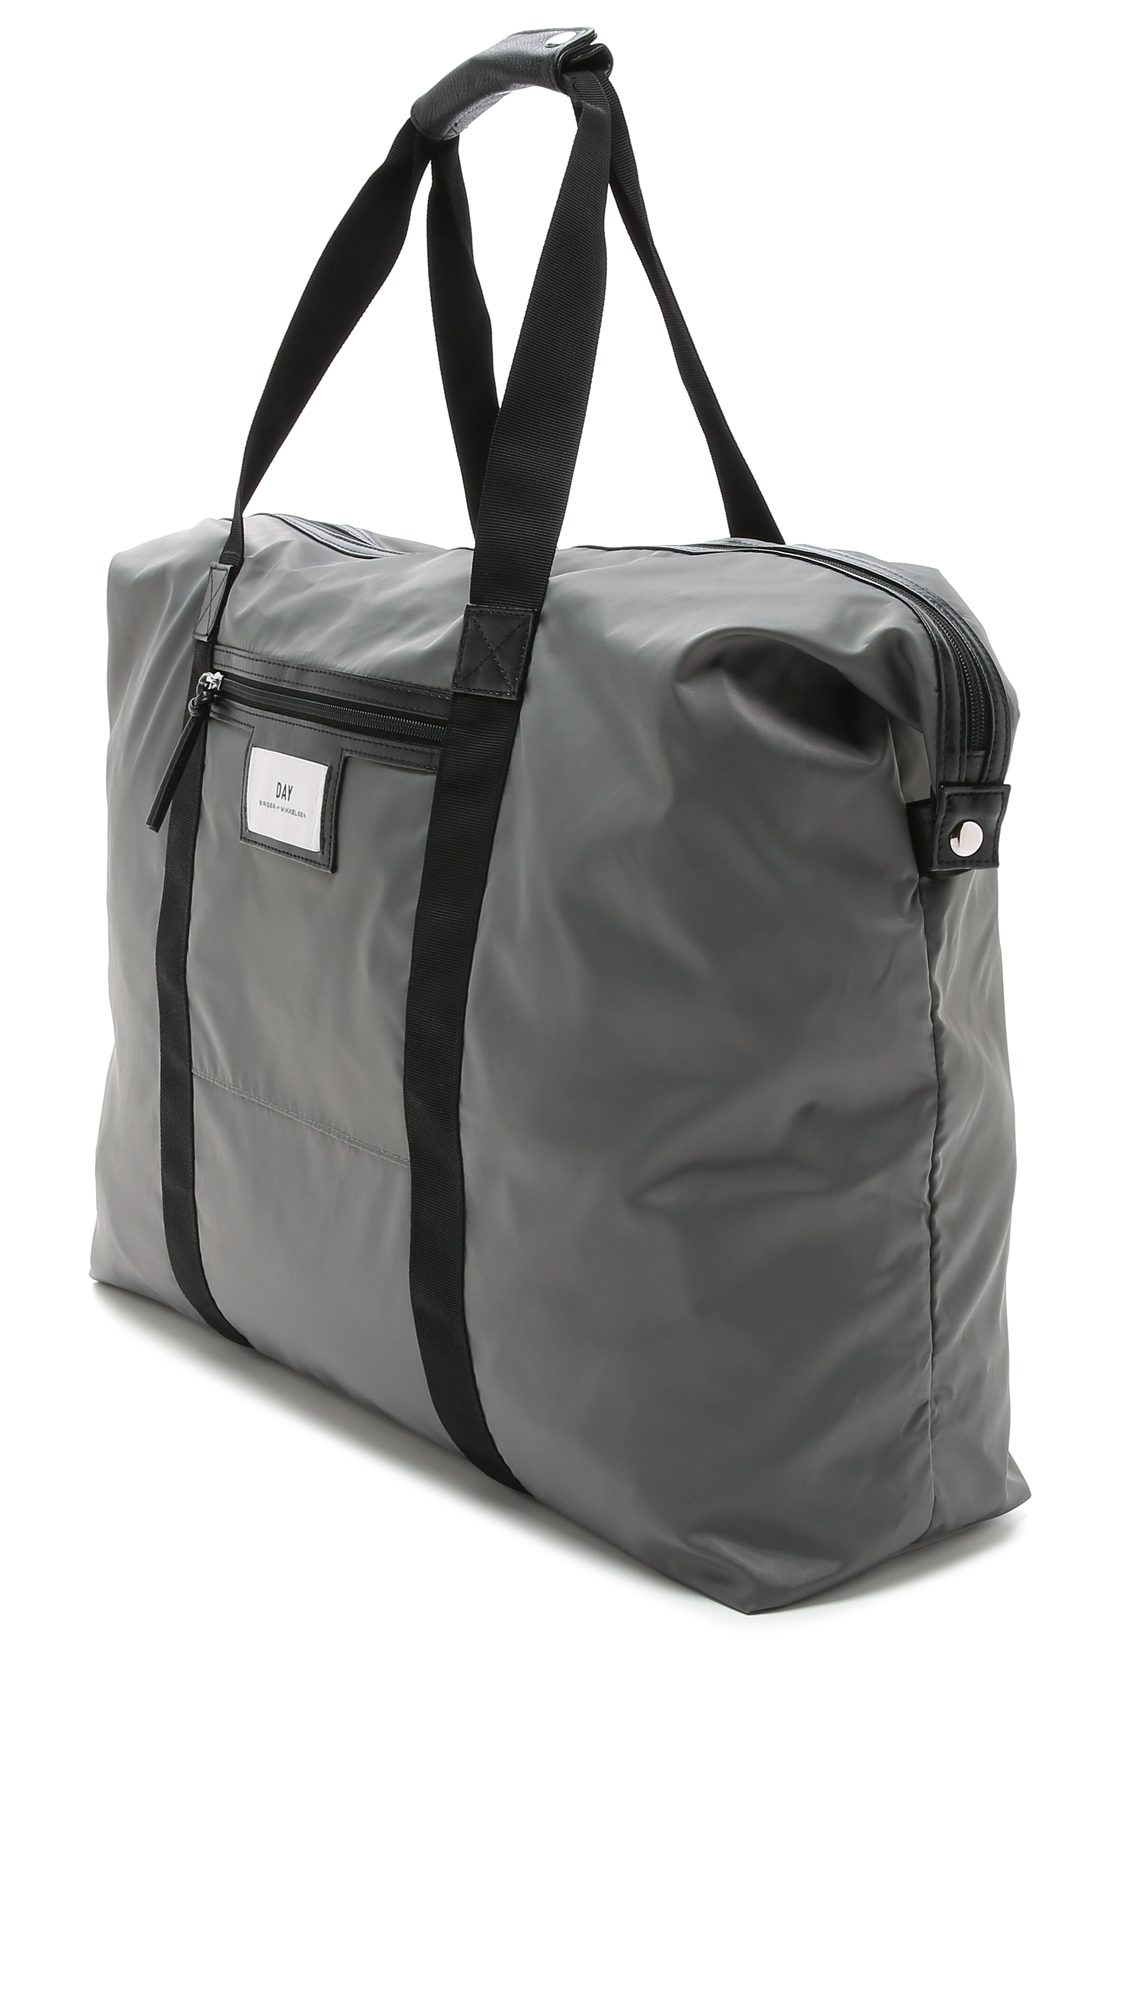 Day birger et mikkelsen Day Gweneth Weekend Bag - Kohl in Gray | Lyst